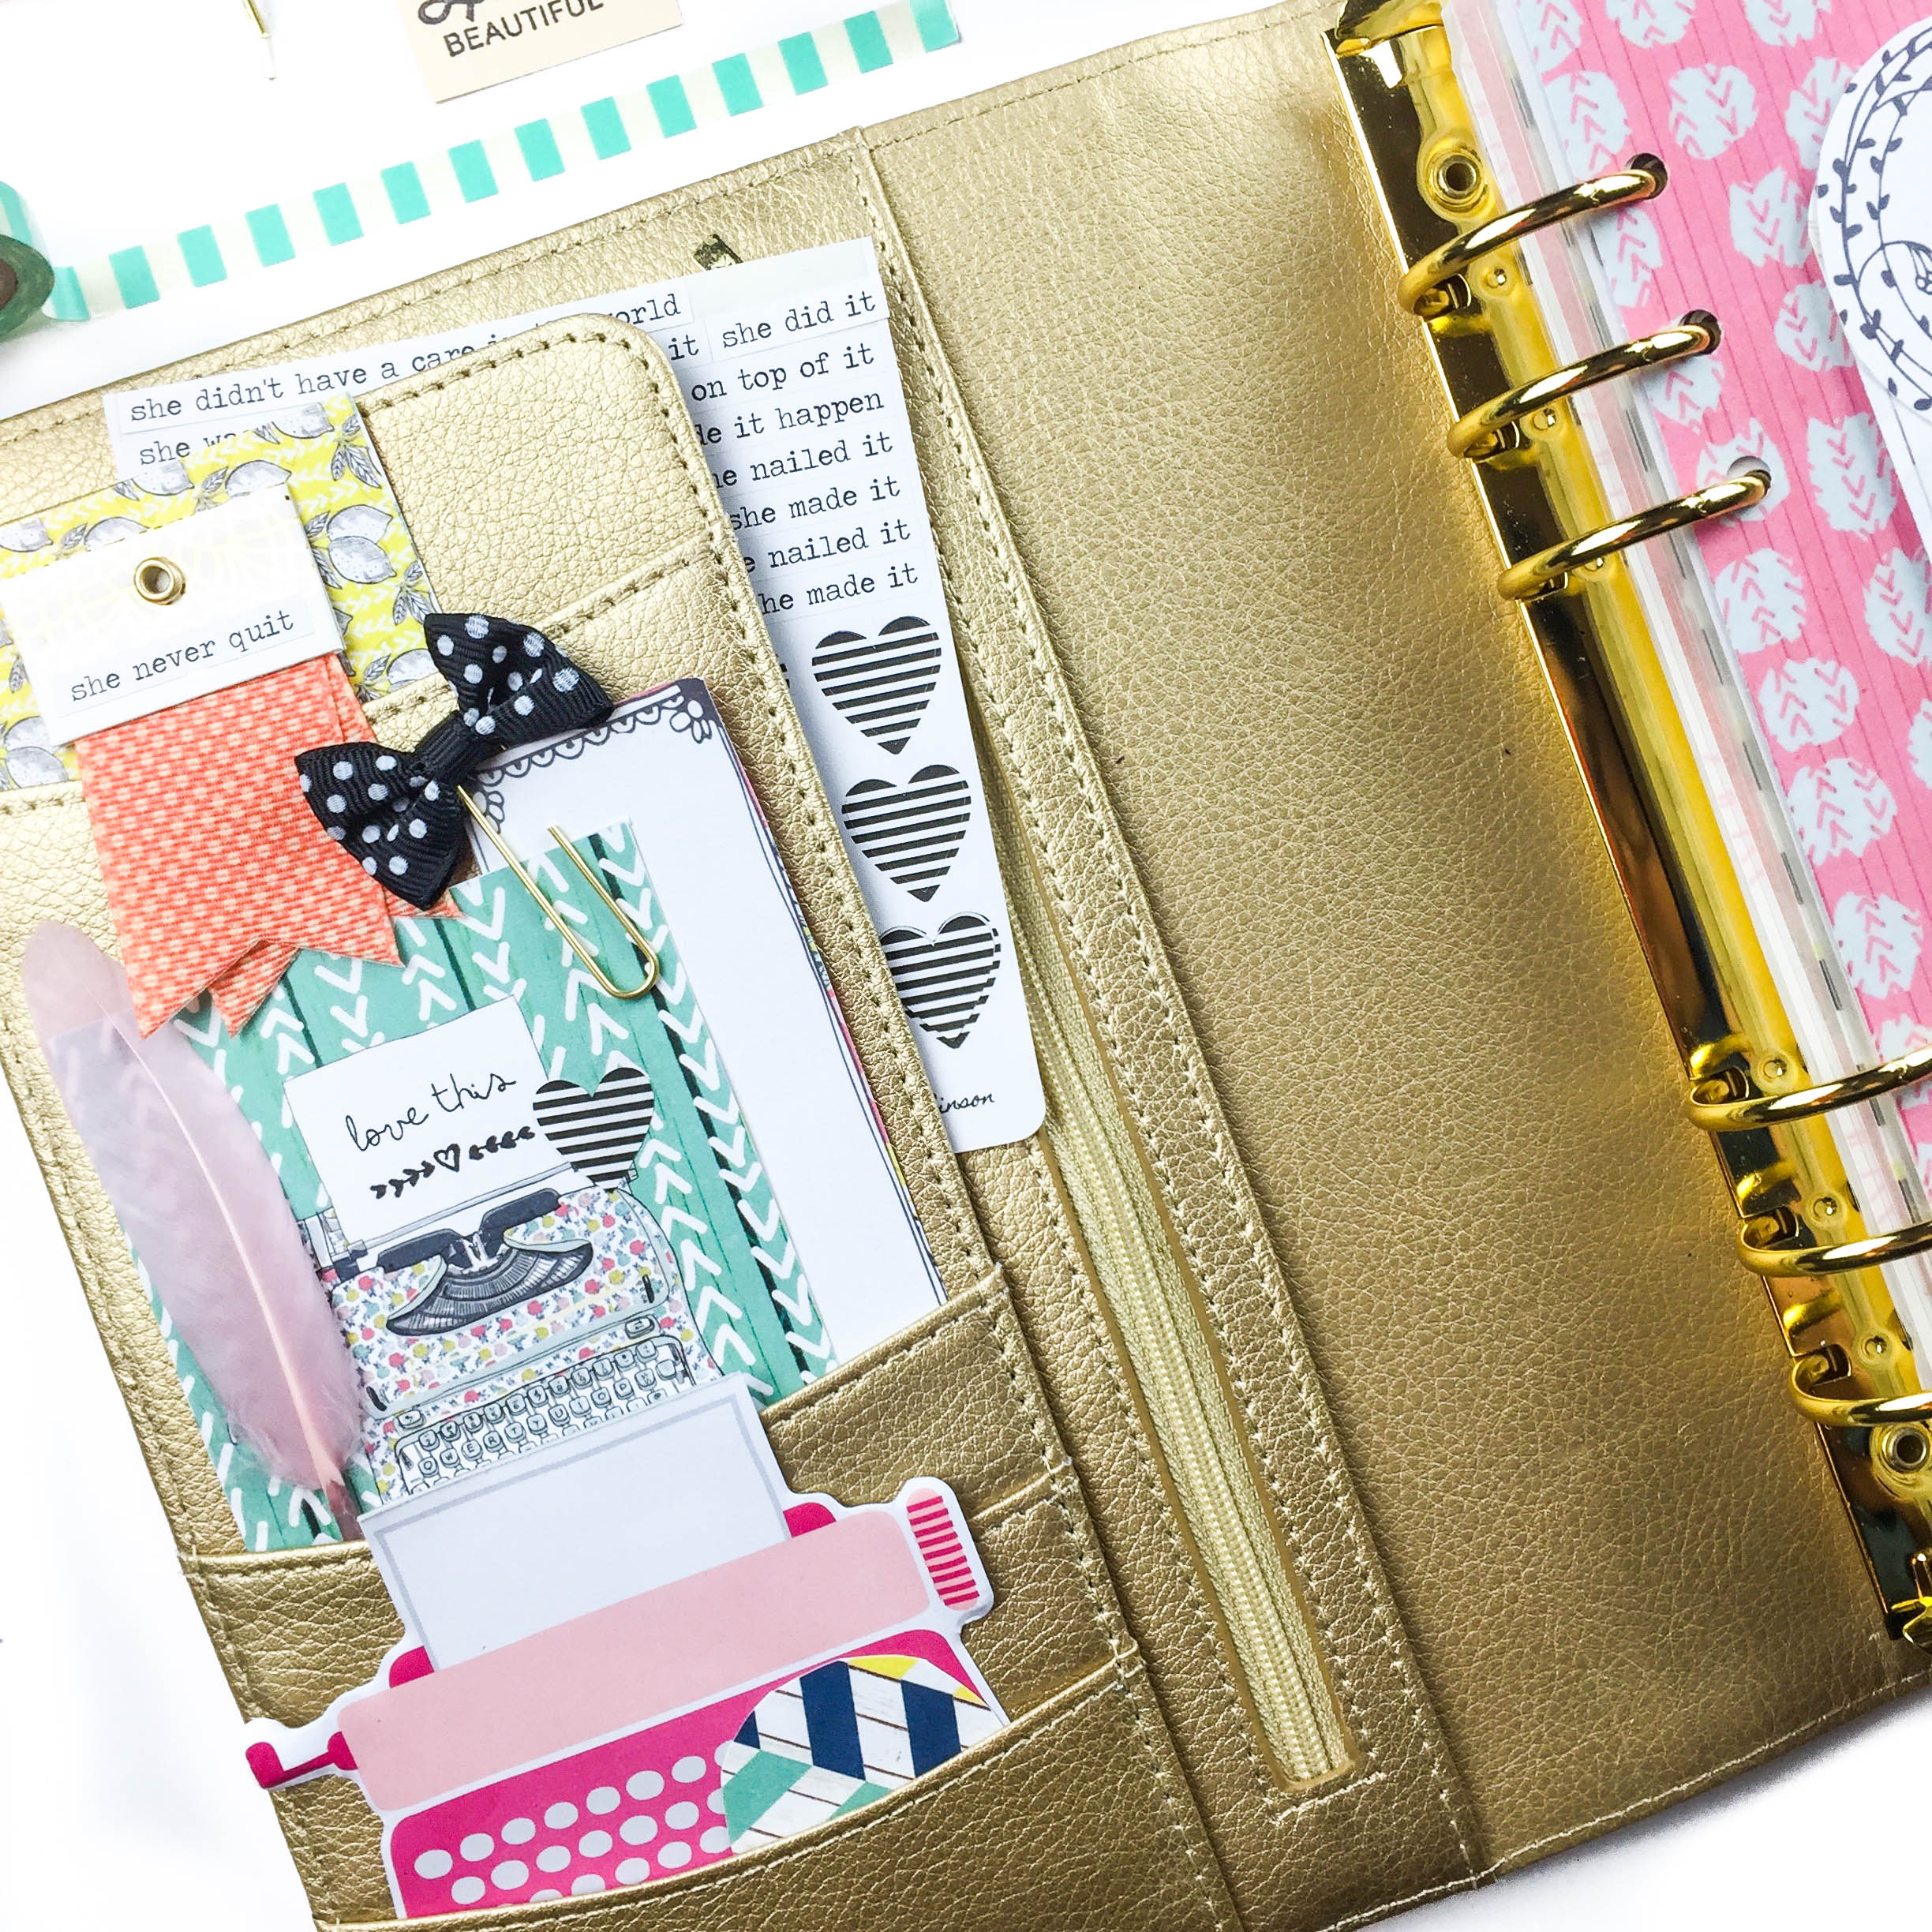 PlannerSocietyApril_ (7 of 36).jpg